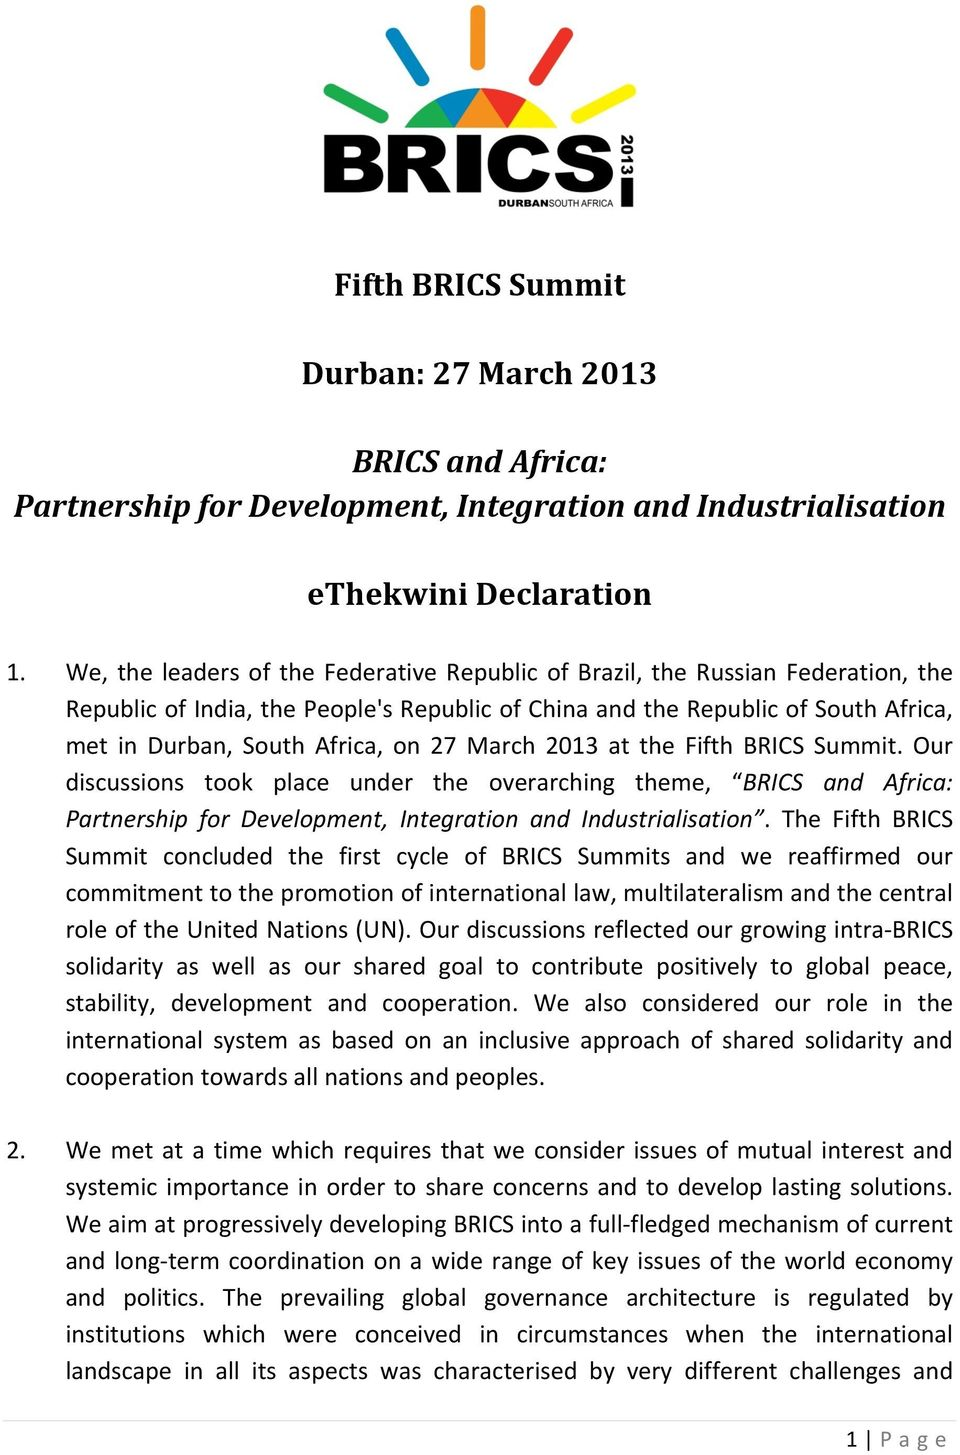 27 March 2013 at the Fifth BRICS Summit. Our discussions took place under the overarching theme, BRICS and Africa: Partnership for Development, Integration and Industrialisation.